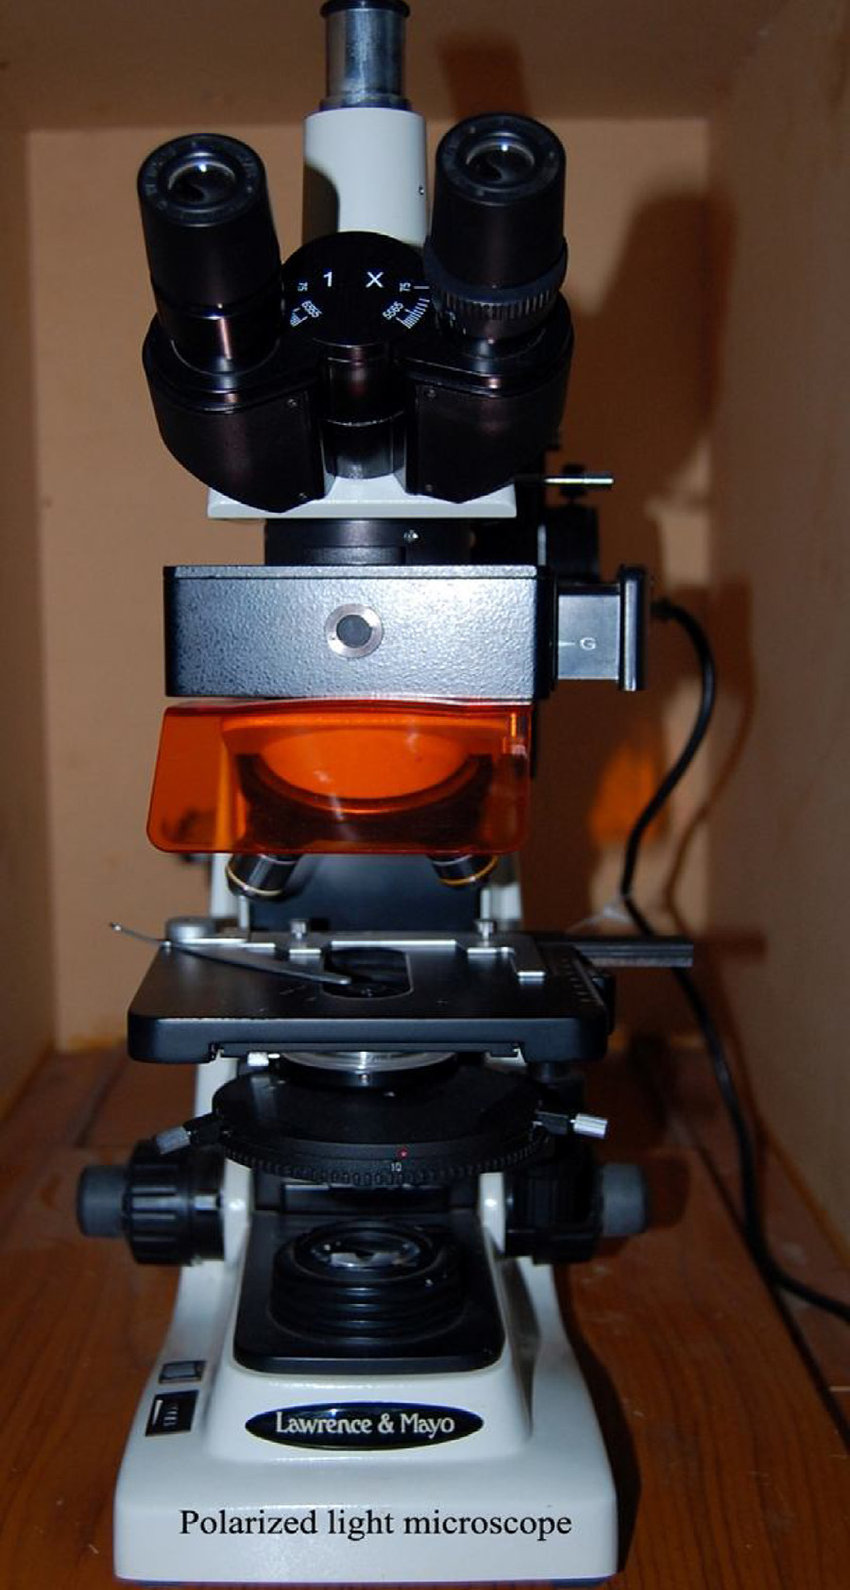 medium resolution of polarized light microscope used in the study